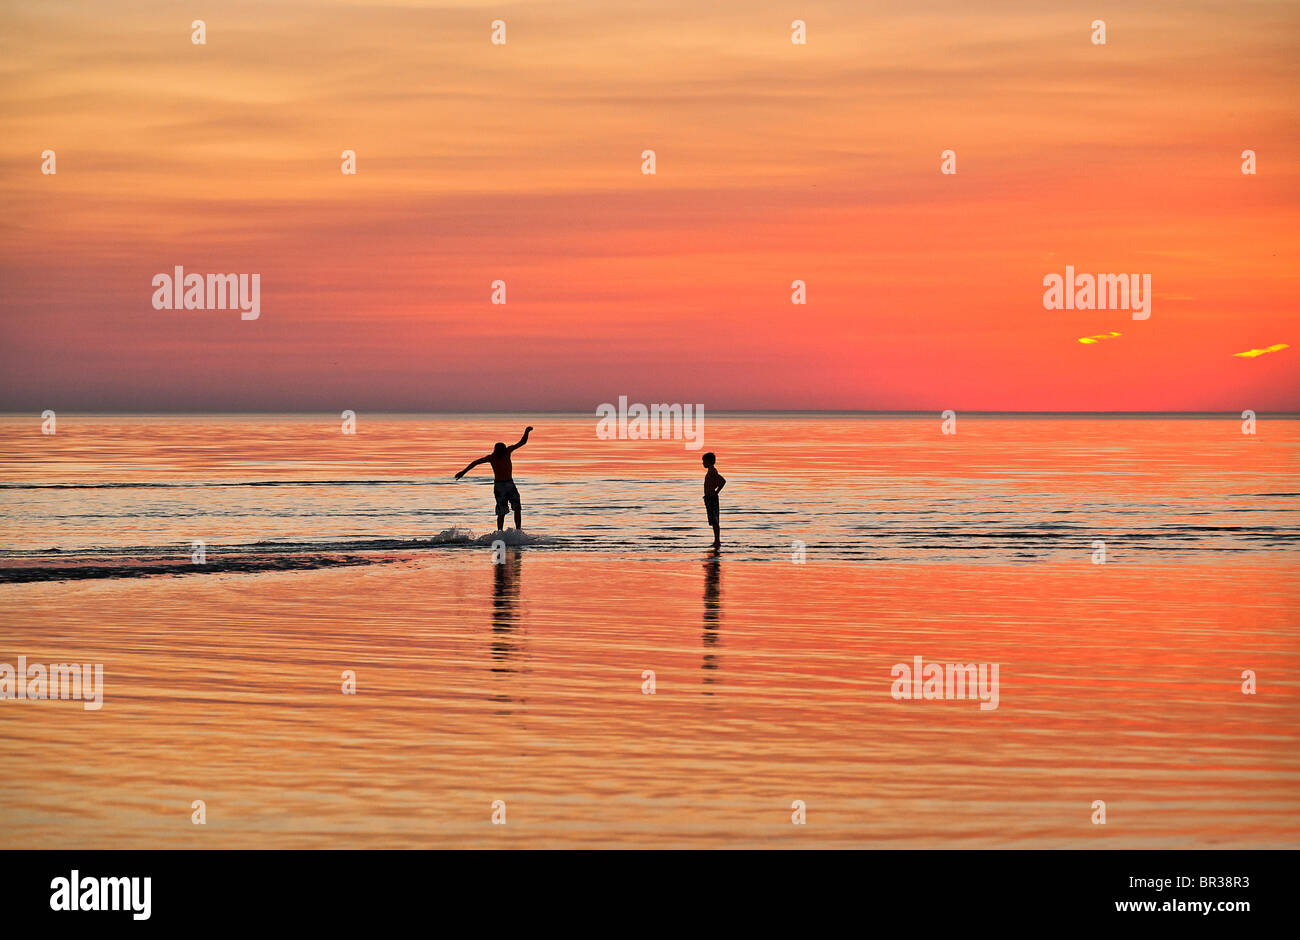 Boys boogie boarding in shallow water, Cape Cod, Massachusetts, USA - Stock Image